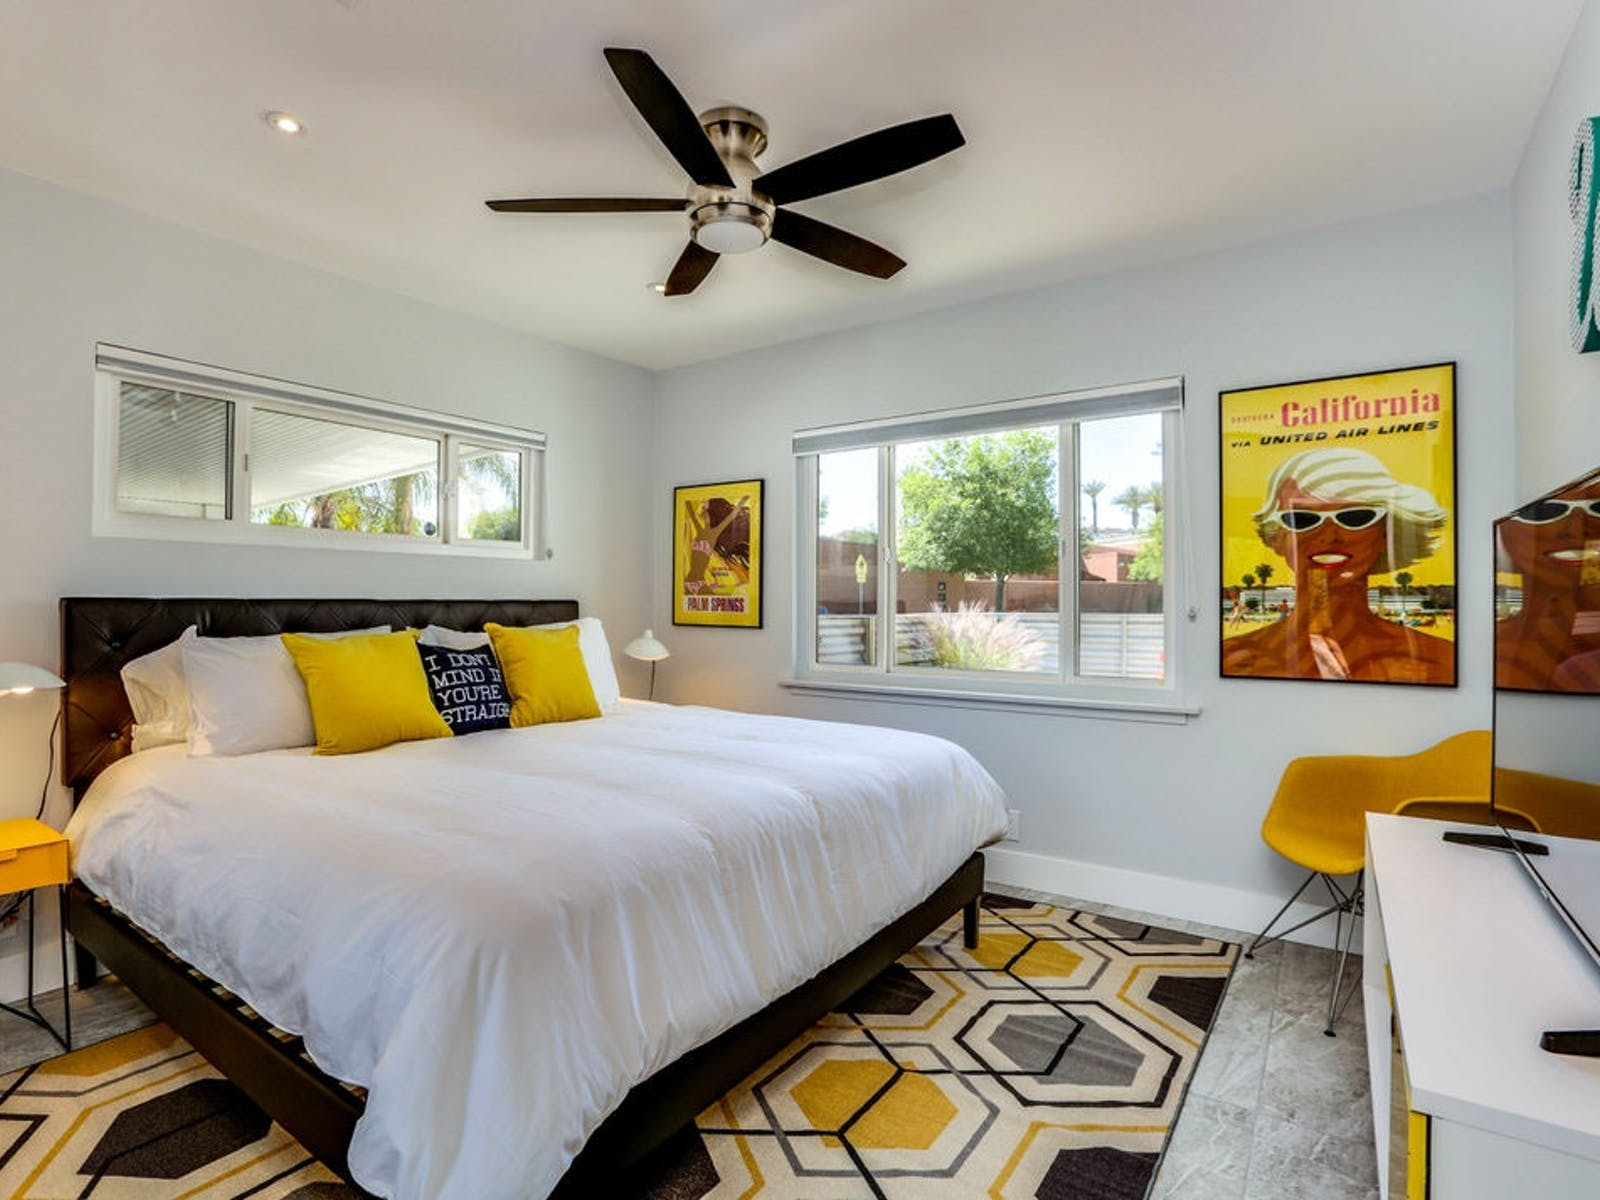 Palm Springs vacation rental with a patterned rug in yellow and gray